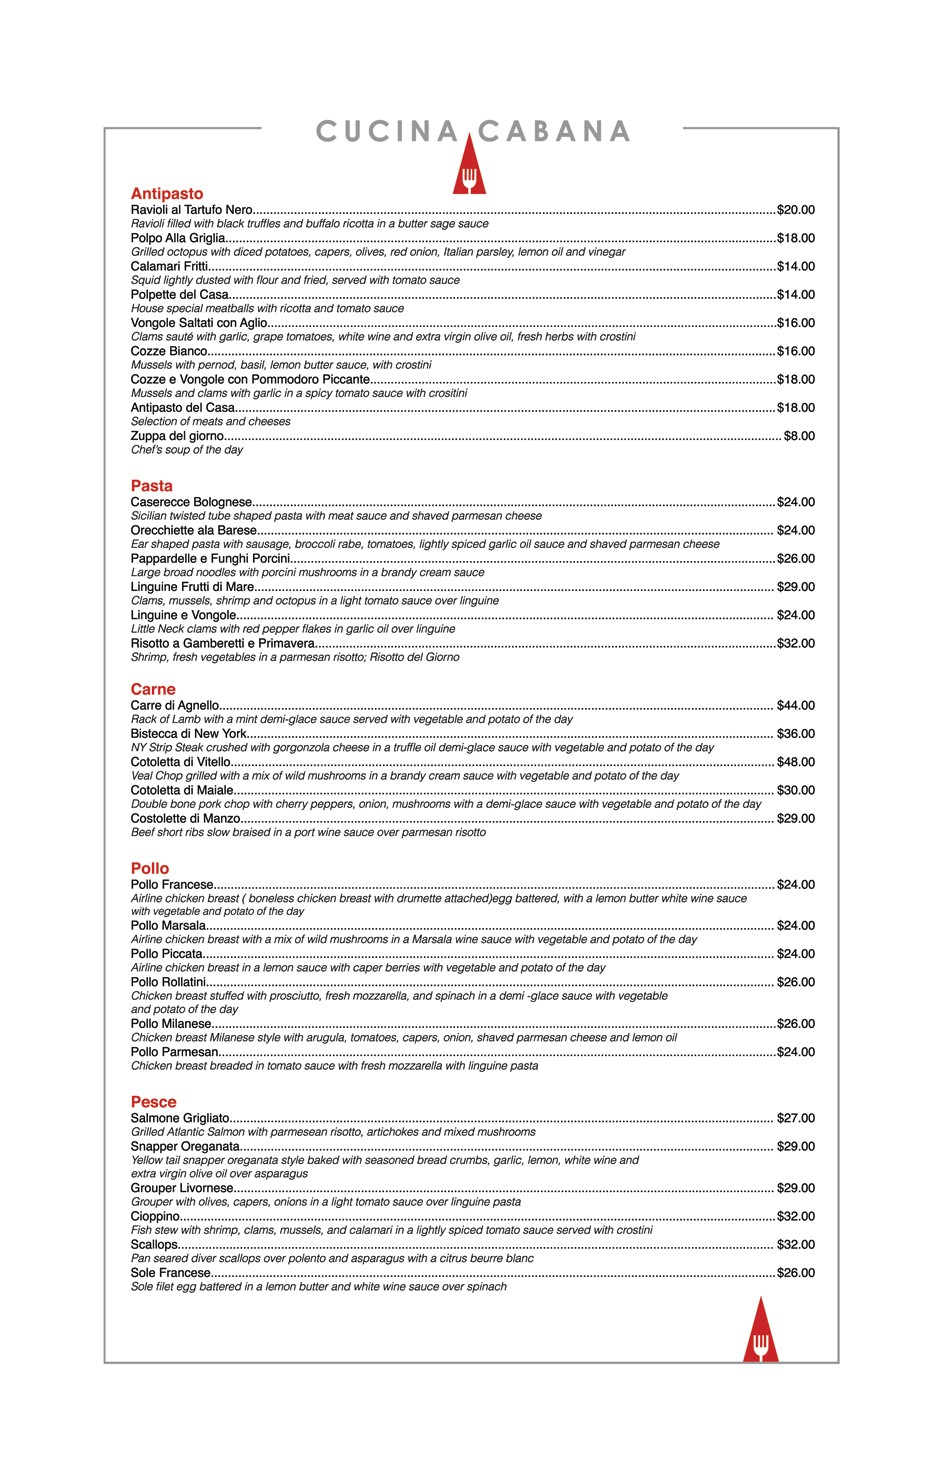 Cucina Cabana Owner Menus At Cucina Cabana Restaurant View Our Menu